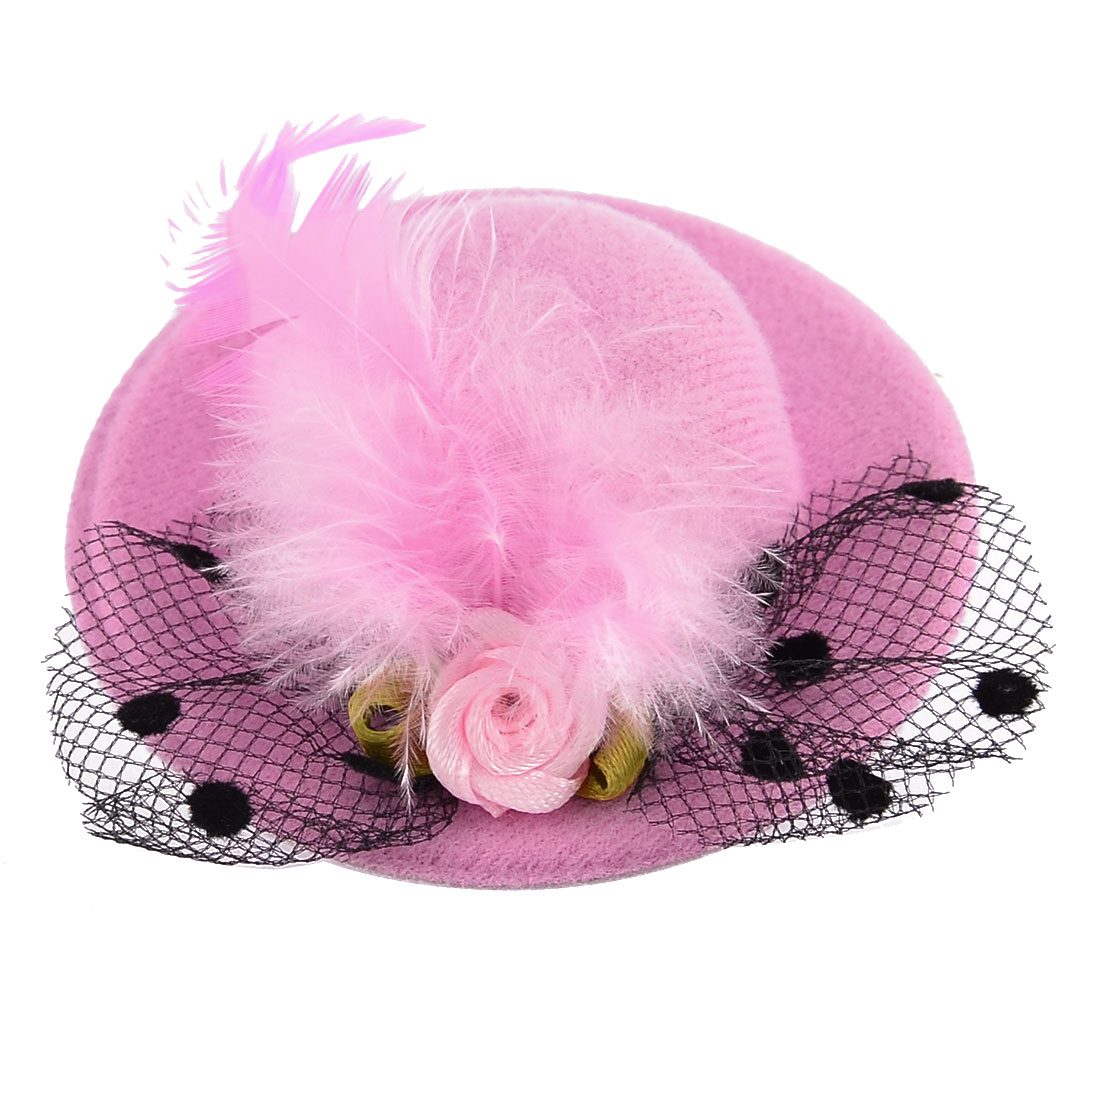 Dancing Party Women Mini Top Cocktail Faux Feather Floral Hat Hair Clip Pink